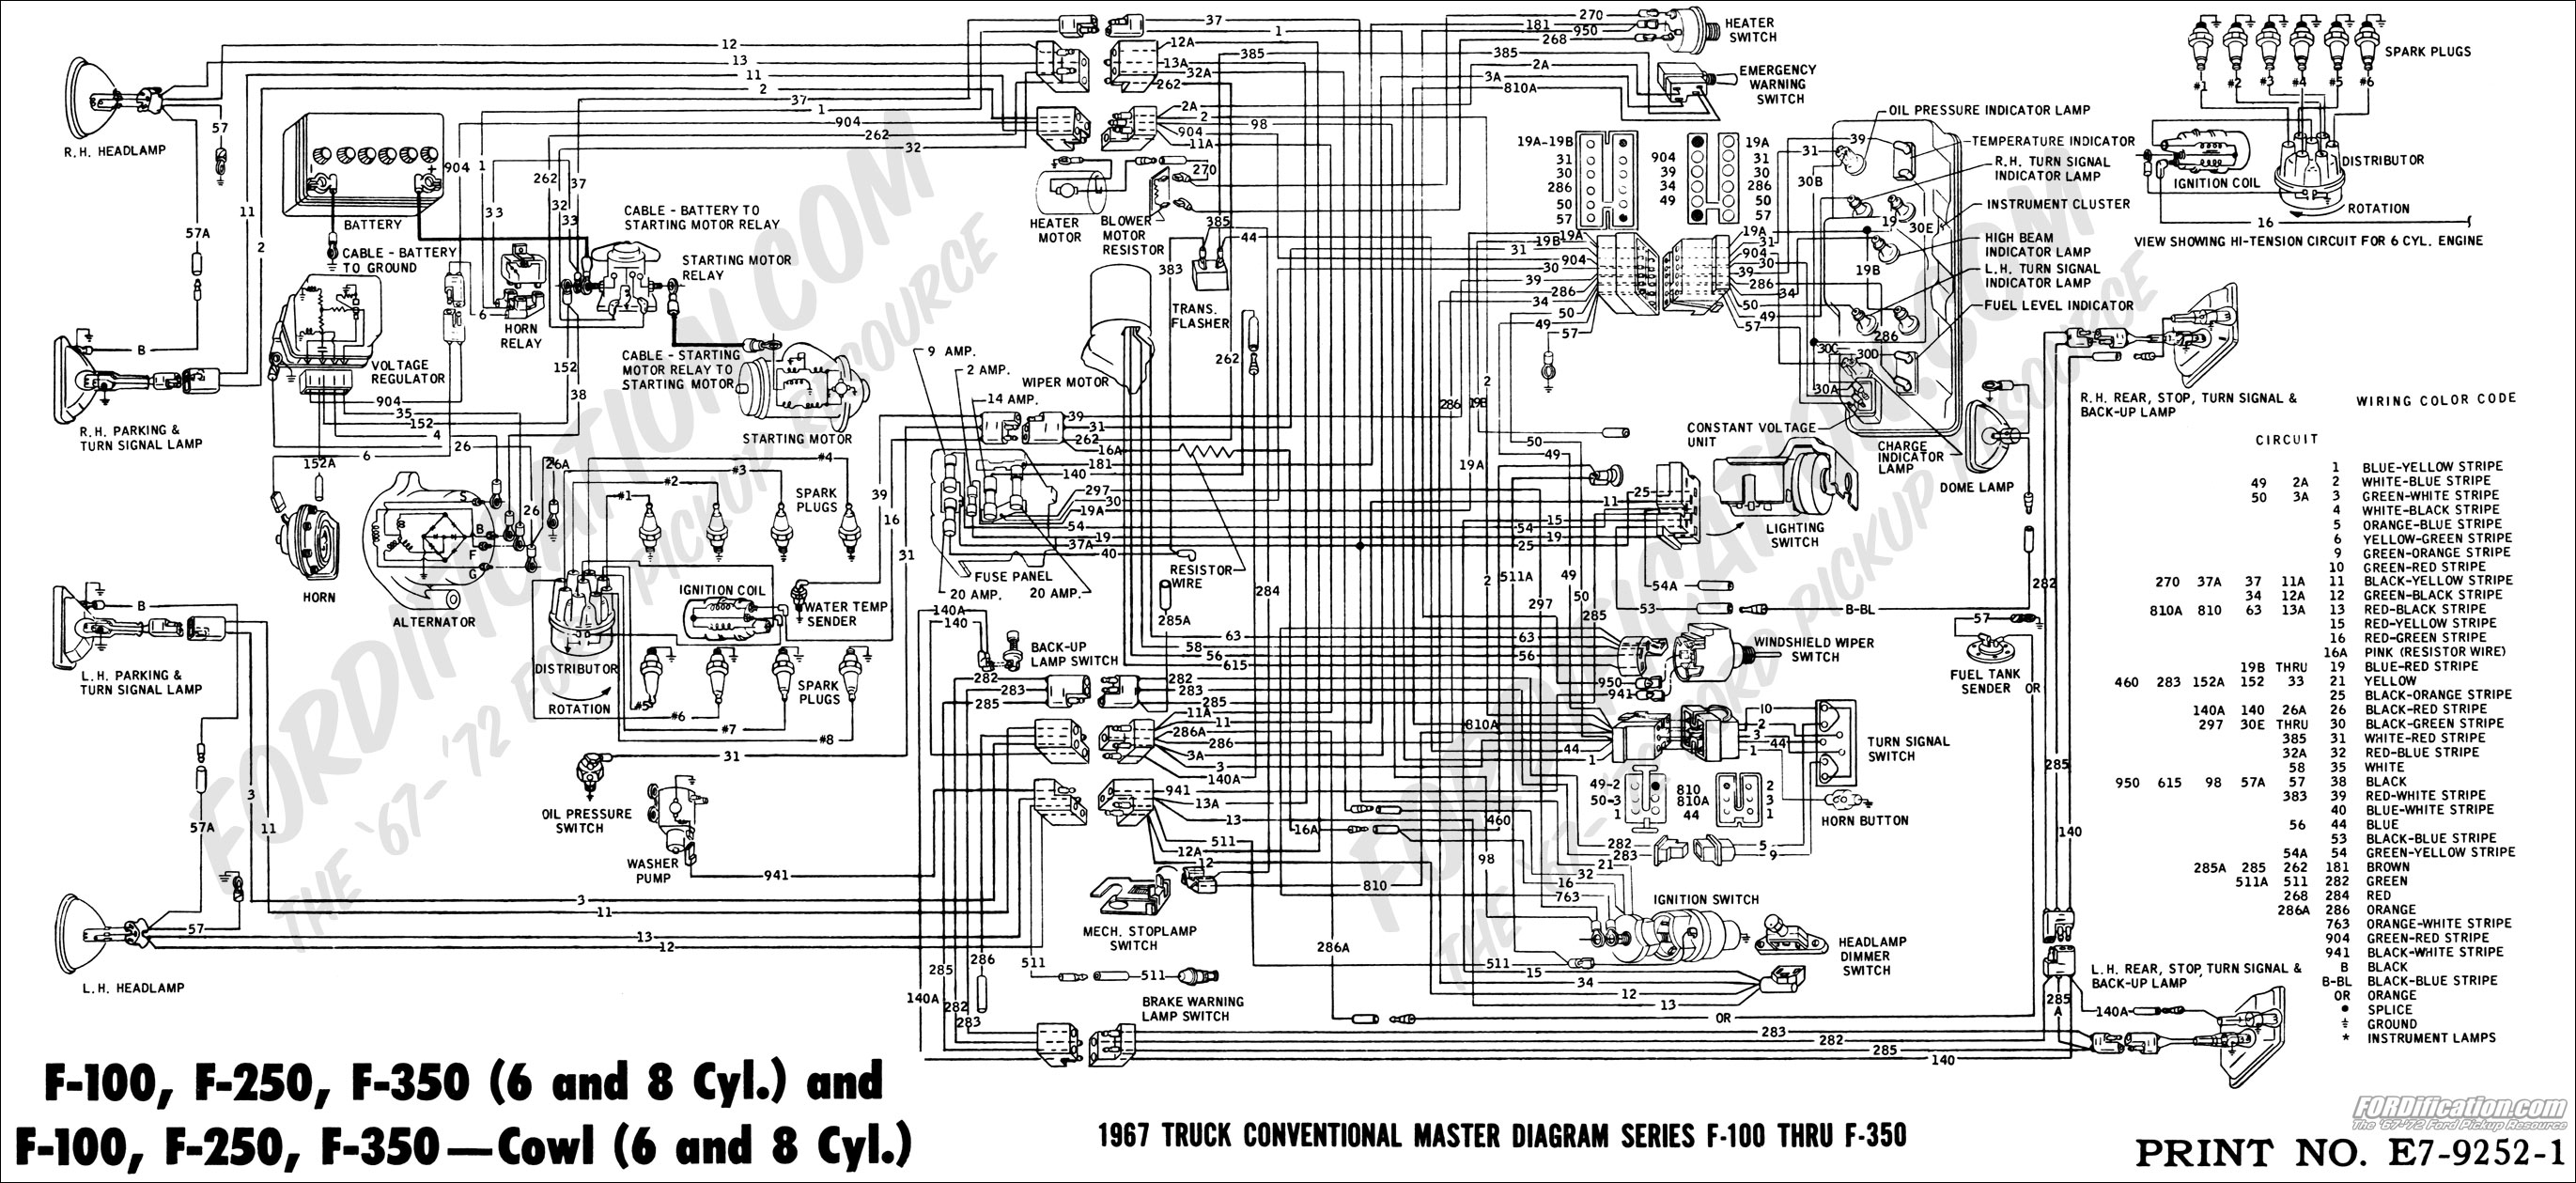 67masterdiagram ford truck technical drawings and schematics section h wiring ford wiring harness diagrams at aneh.co